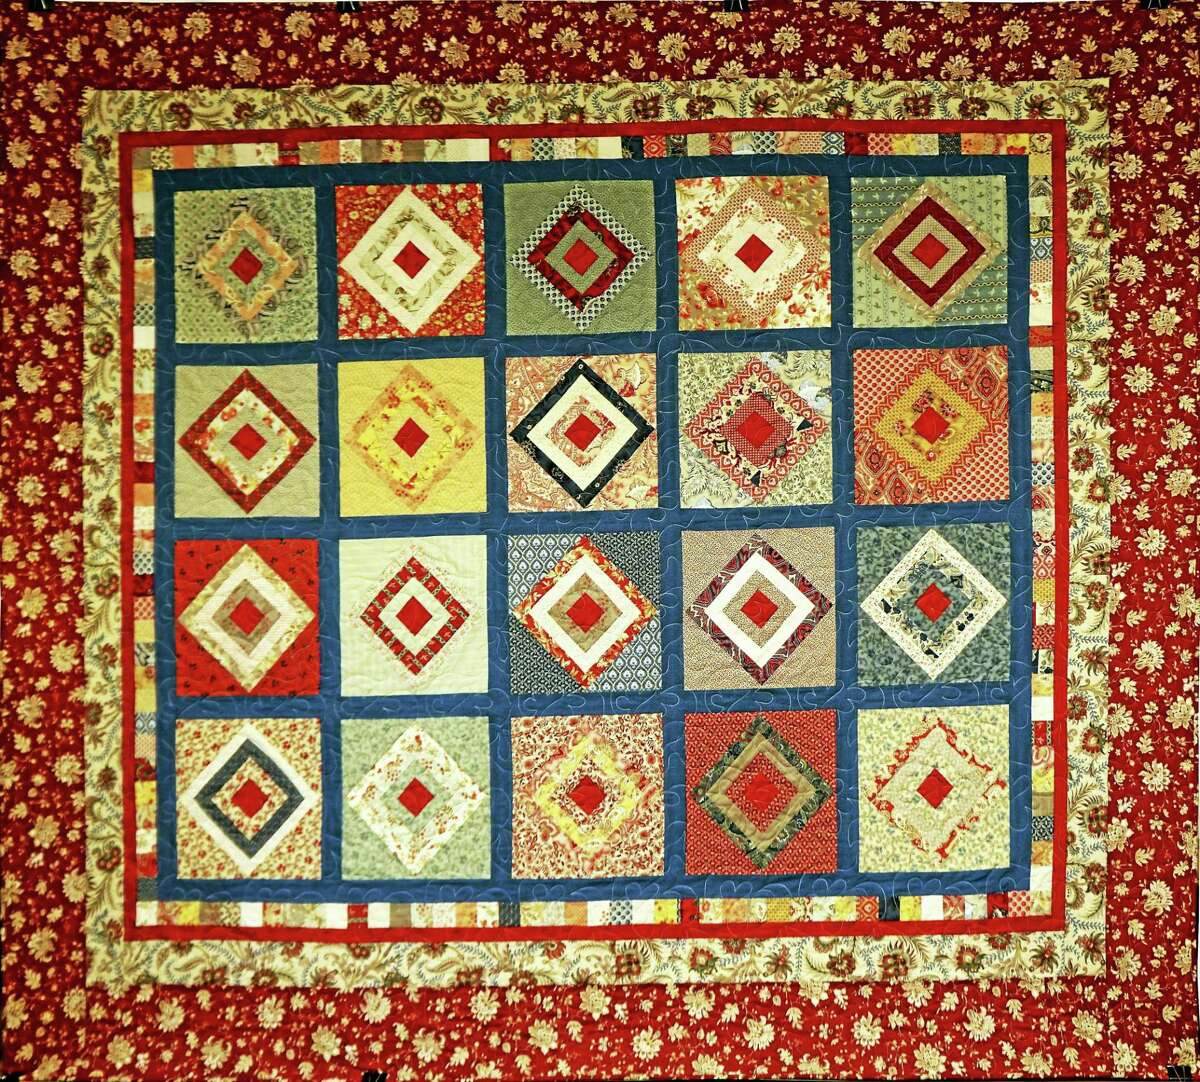 Contributed photo Quilts of all kinds will be on display during a quilt show at the First Congregational Church of Torrington on Saturday, Aug. 27. The event marks the church's 275th anniversary.